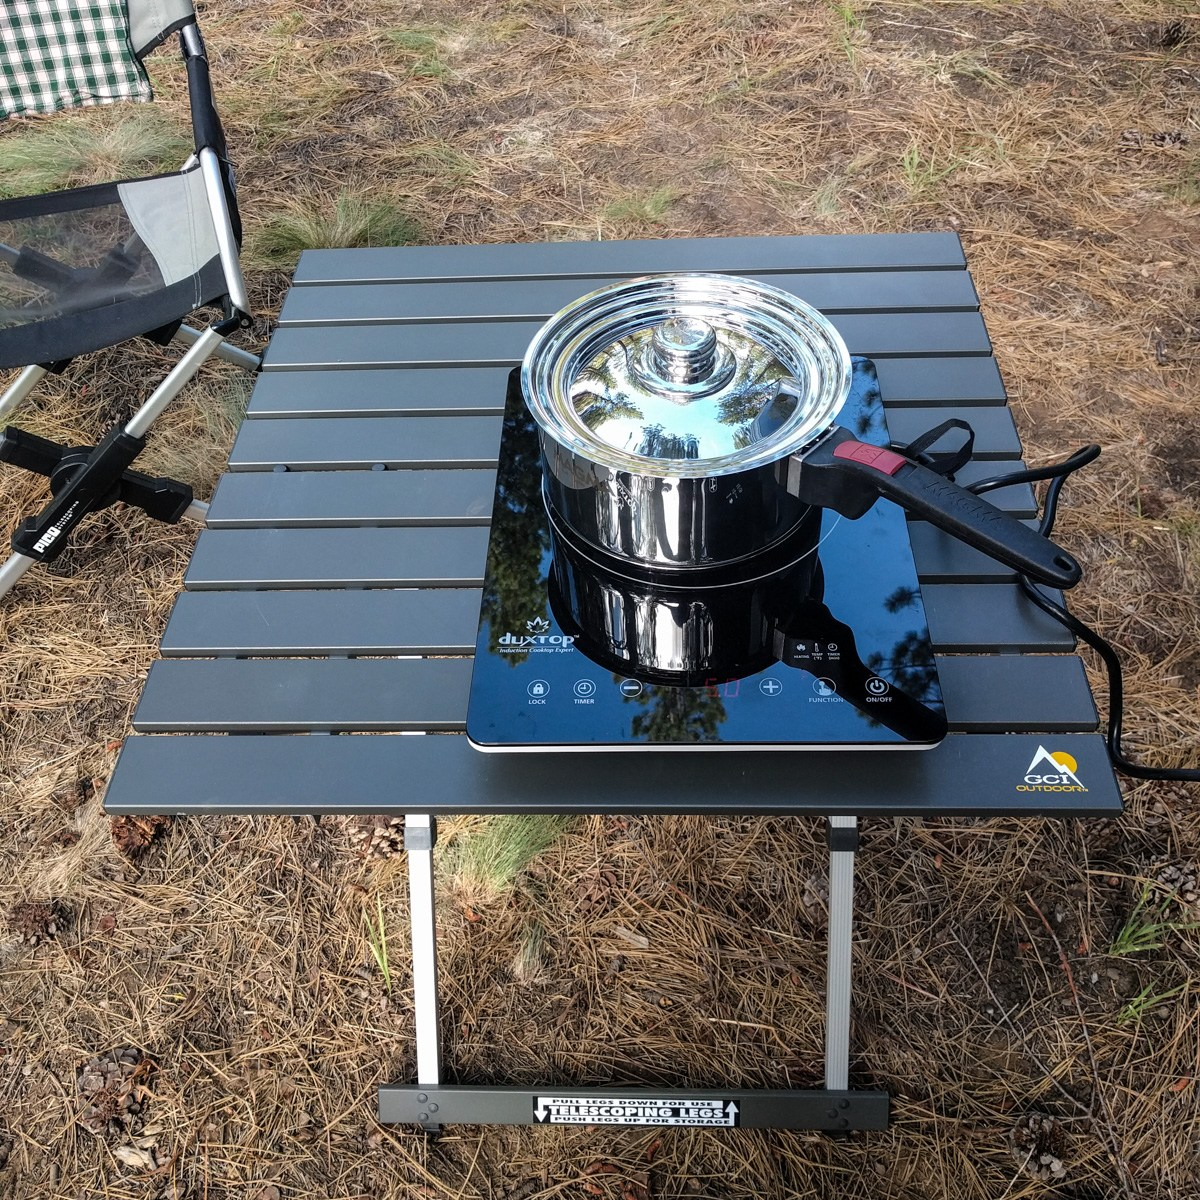 Portable induction cooktop can be used inside or outside the van